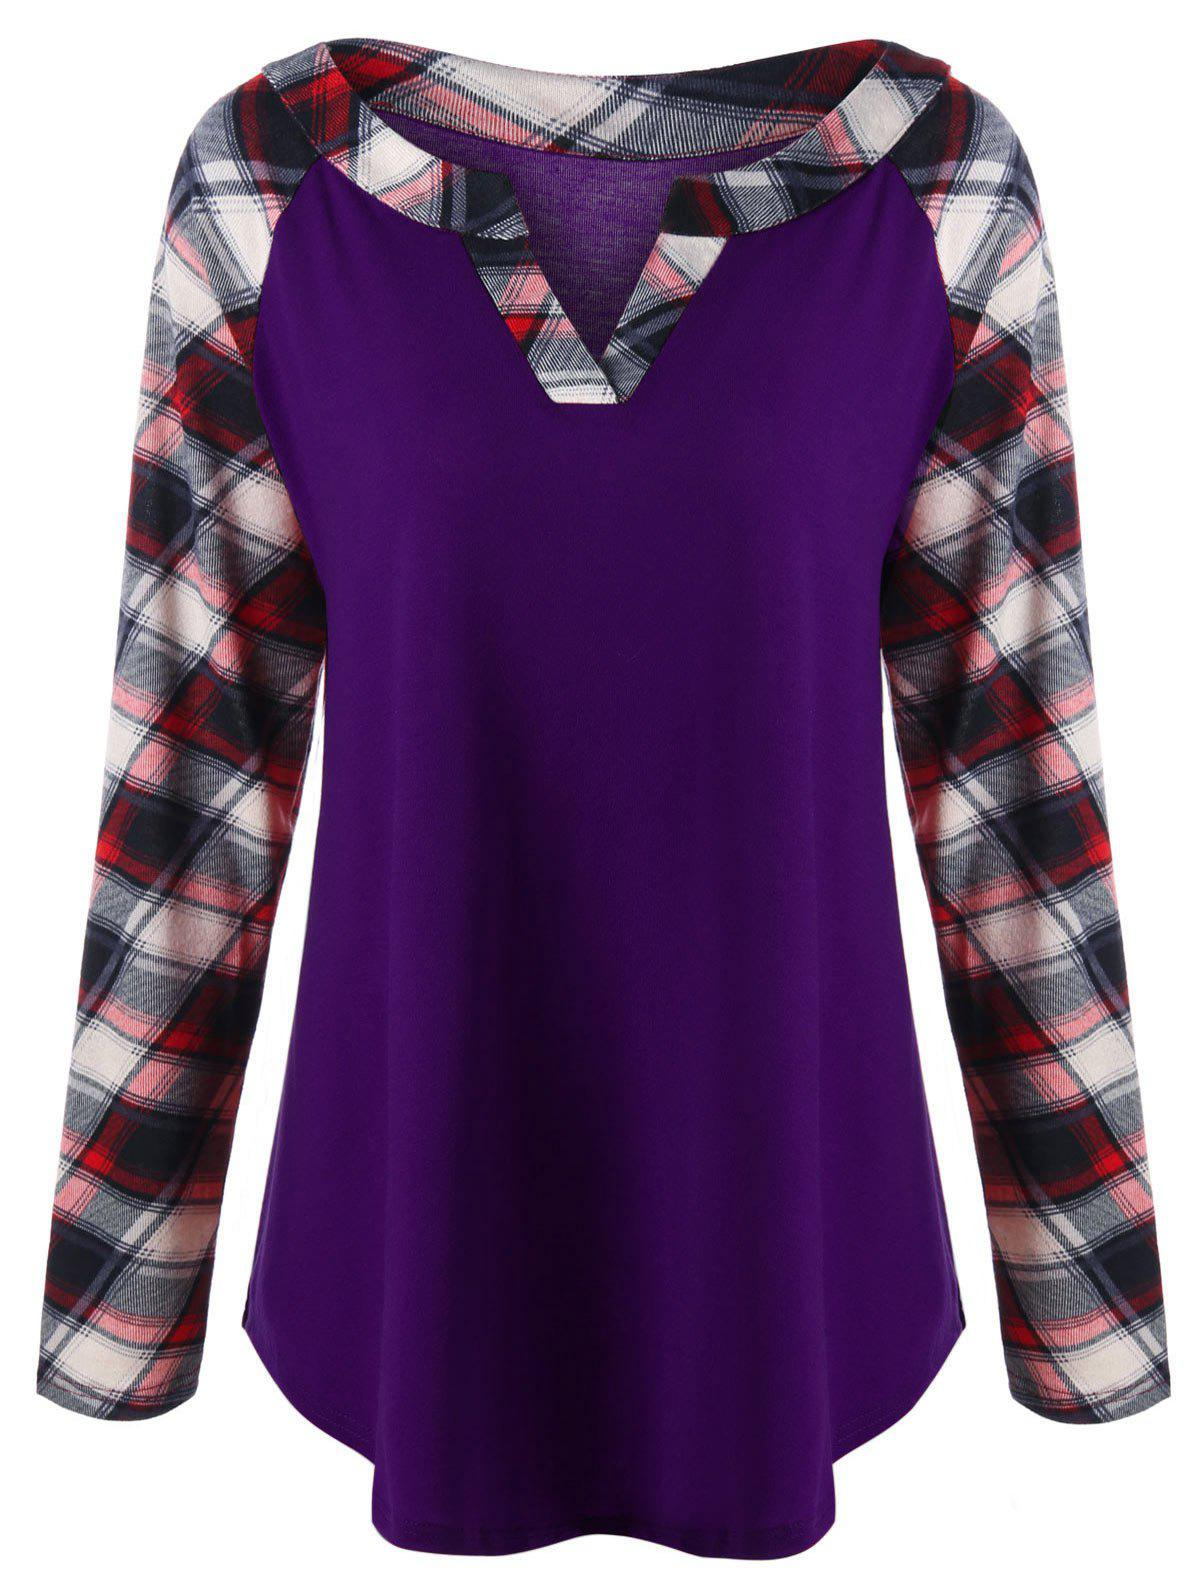 Plus Size Raglan Sleeve Plaid T-shirtWOMEN<br><br>Size: 5XL; Color: PURPLE; Material: Rayon,Spandex; Shirt Length: Long; Sleeve Length: Full; Collar: V-Neck; Style: Casual; Season: Fall,Spring; Pattern Type: Plaid; Weight: 0.3000kg; Package Contents: 1 x Top;